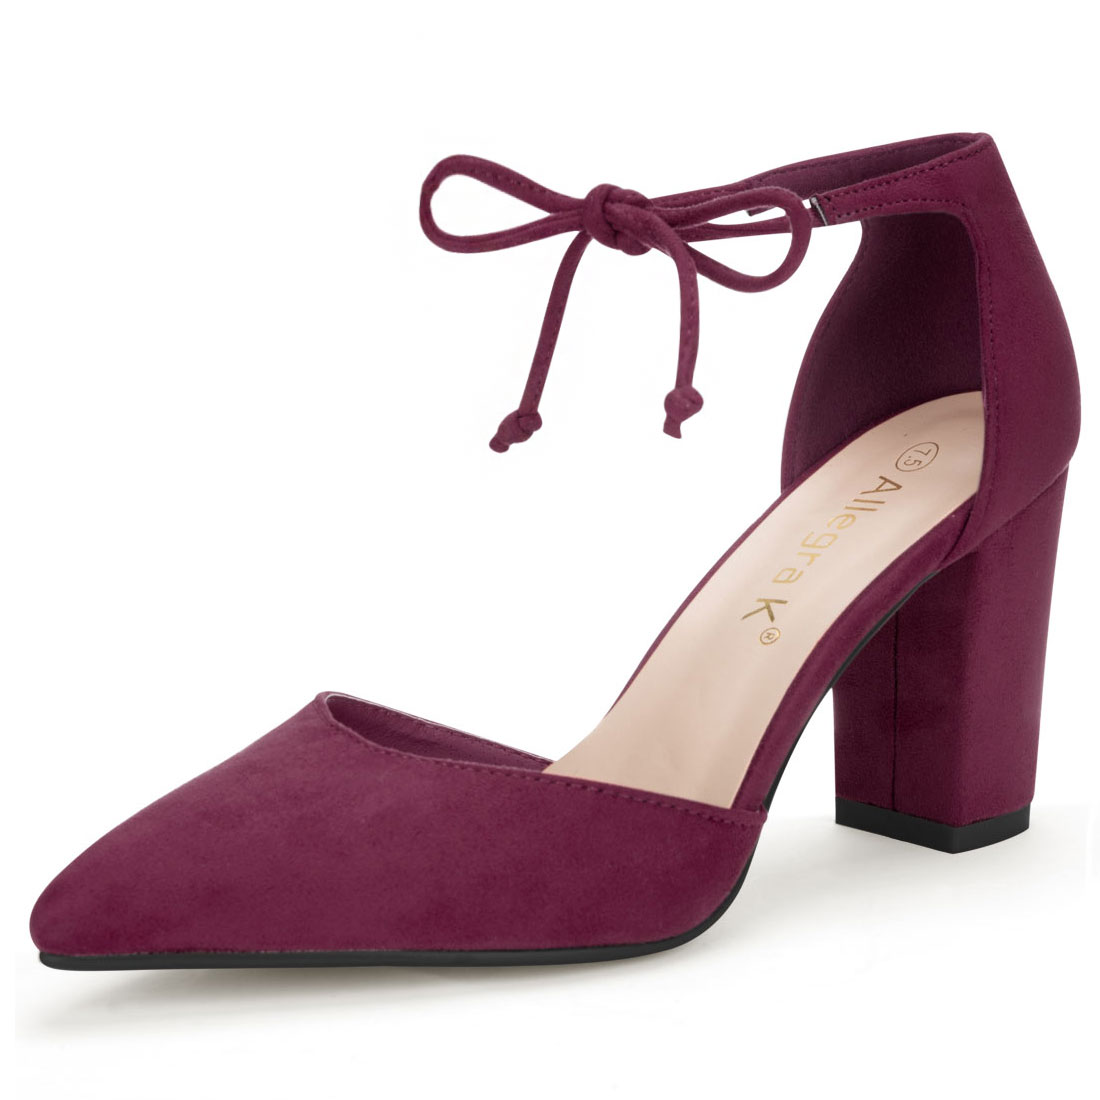 Allegra K Women's Ankle Tie Chunky Heel Pointed Toe Dress Pumps Burgundy US 7